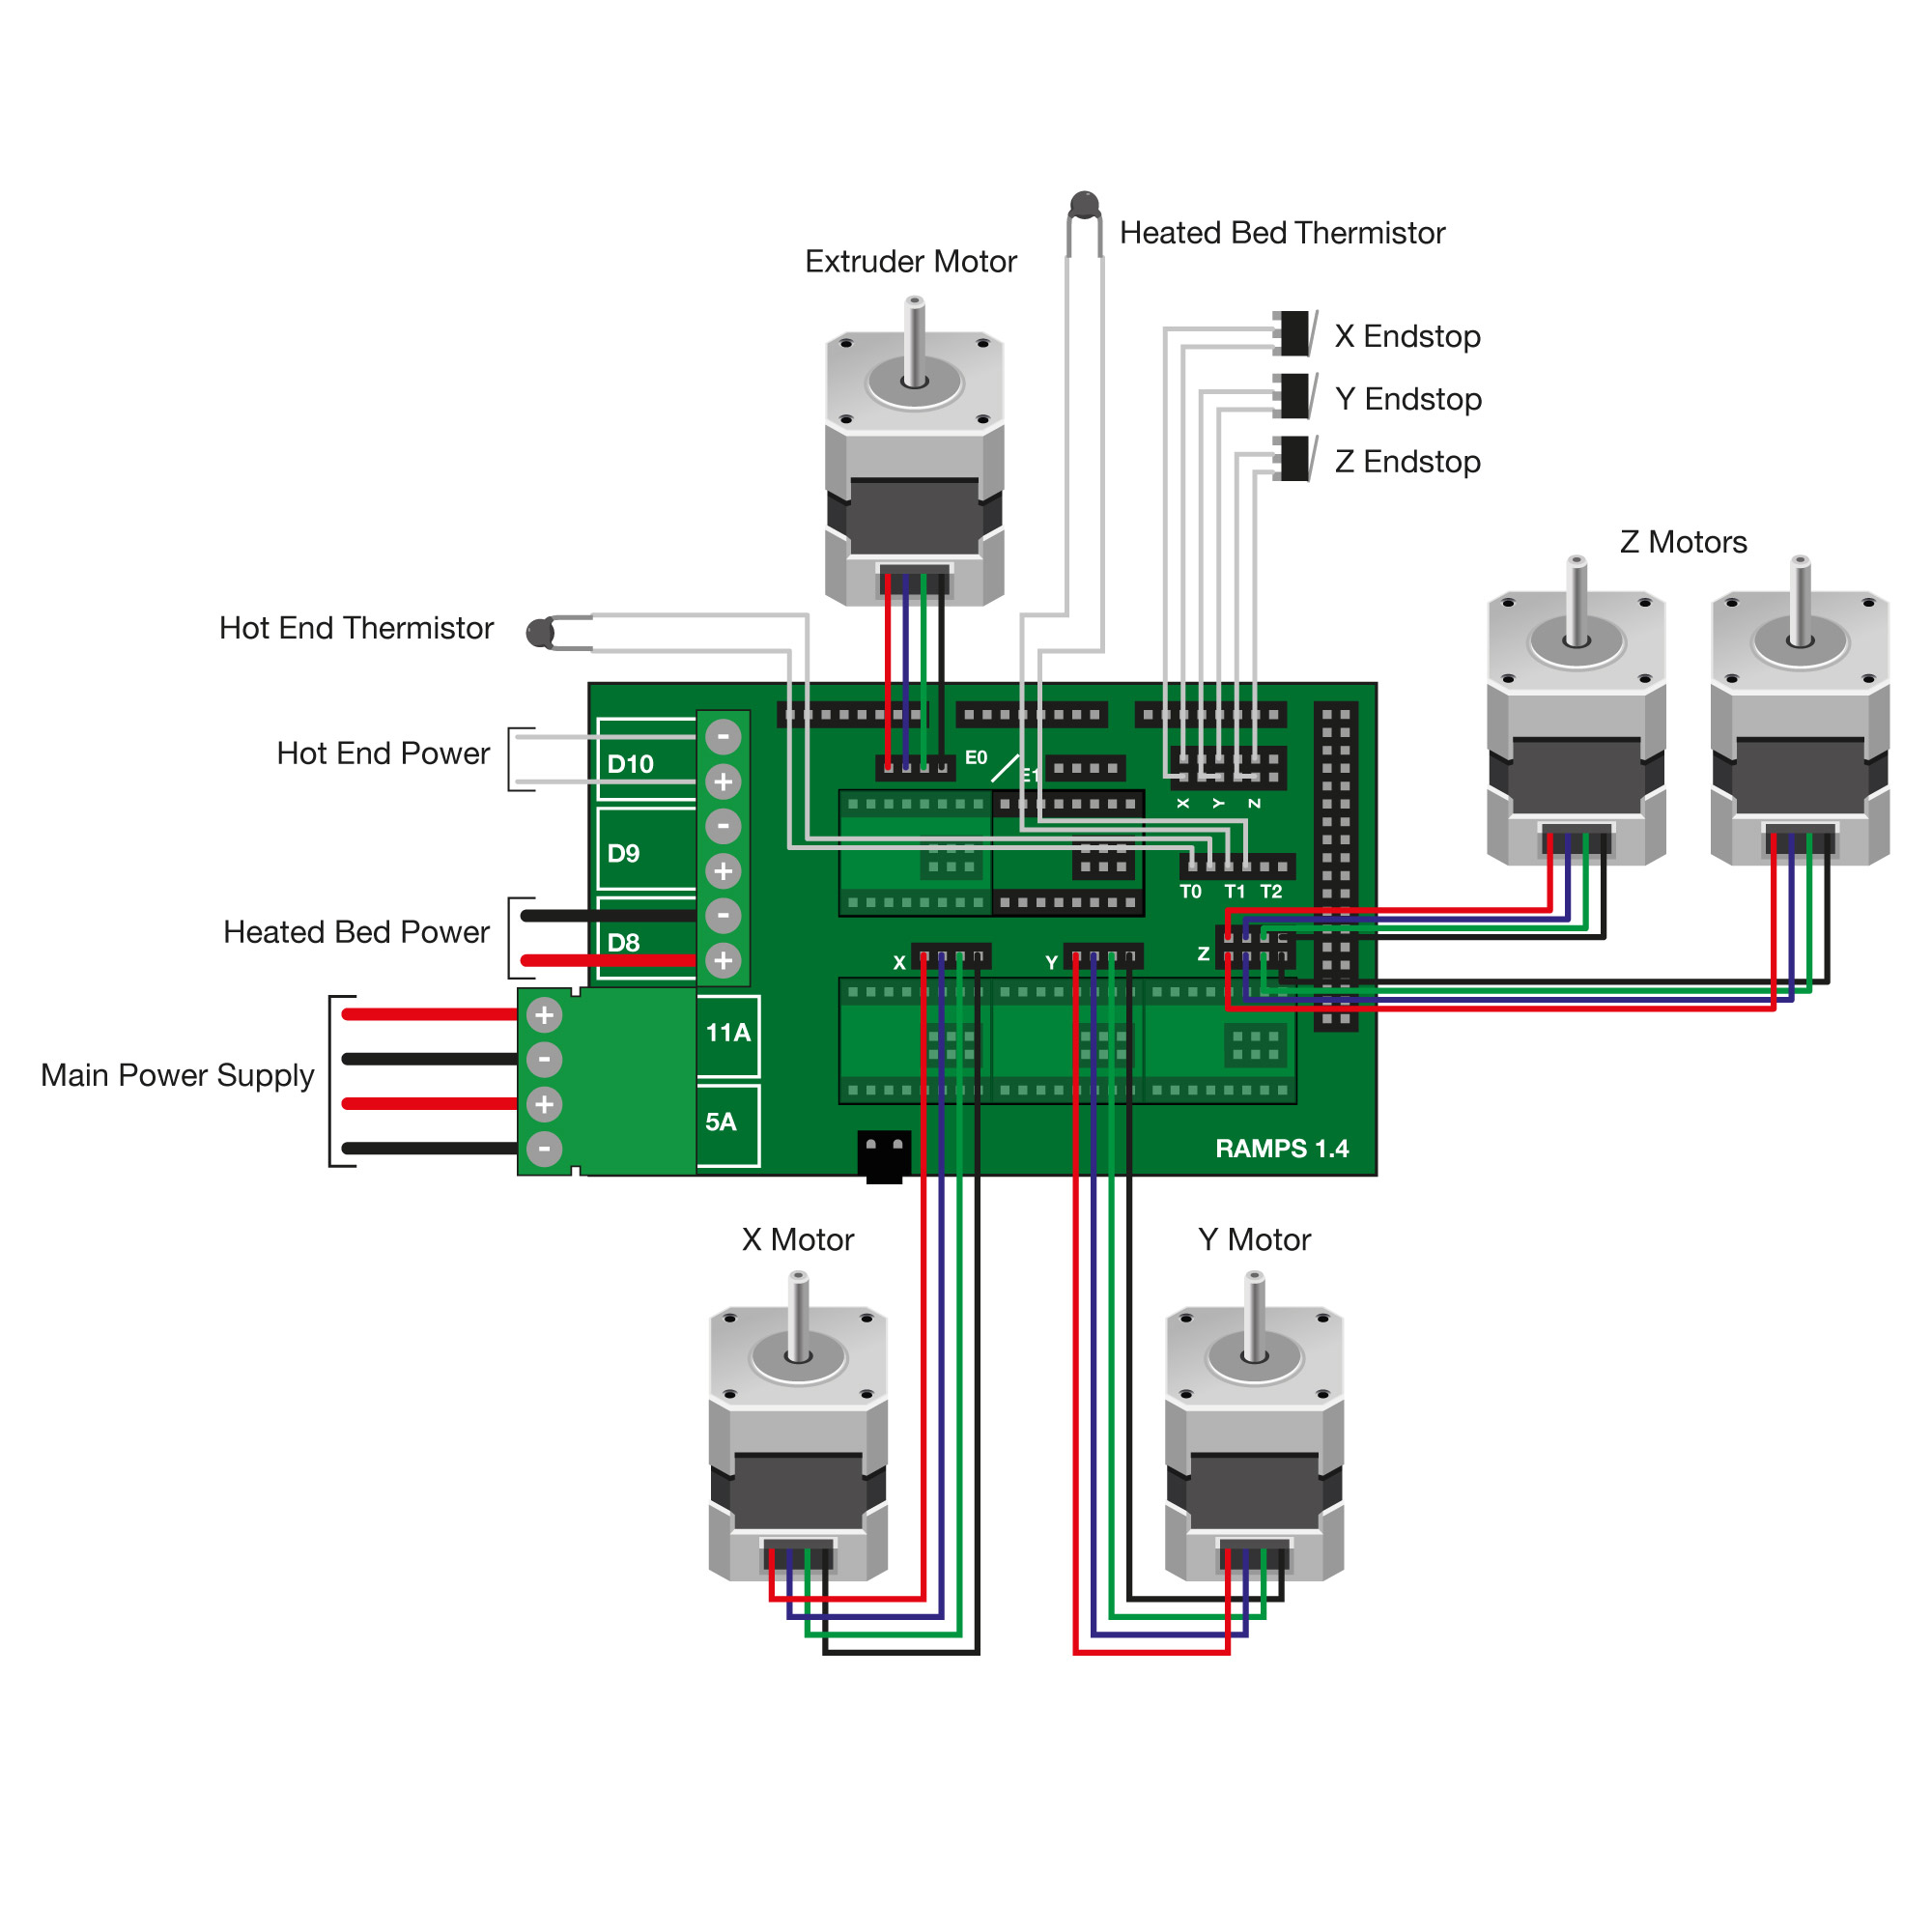 15470352354_3baf2e7bba_o reprap wiring diagram nema 17 wiring diagram \u2022 wiring diagrams j  at gsmportal.co